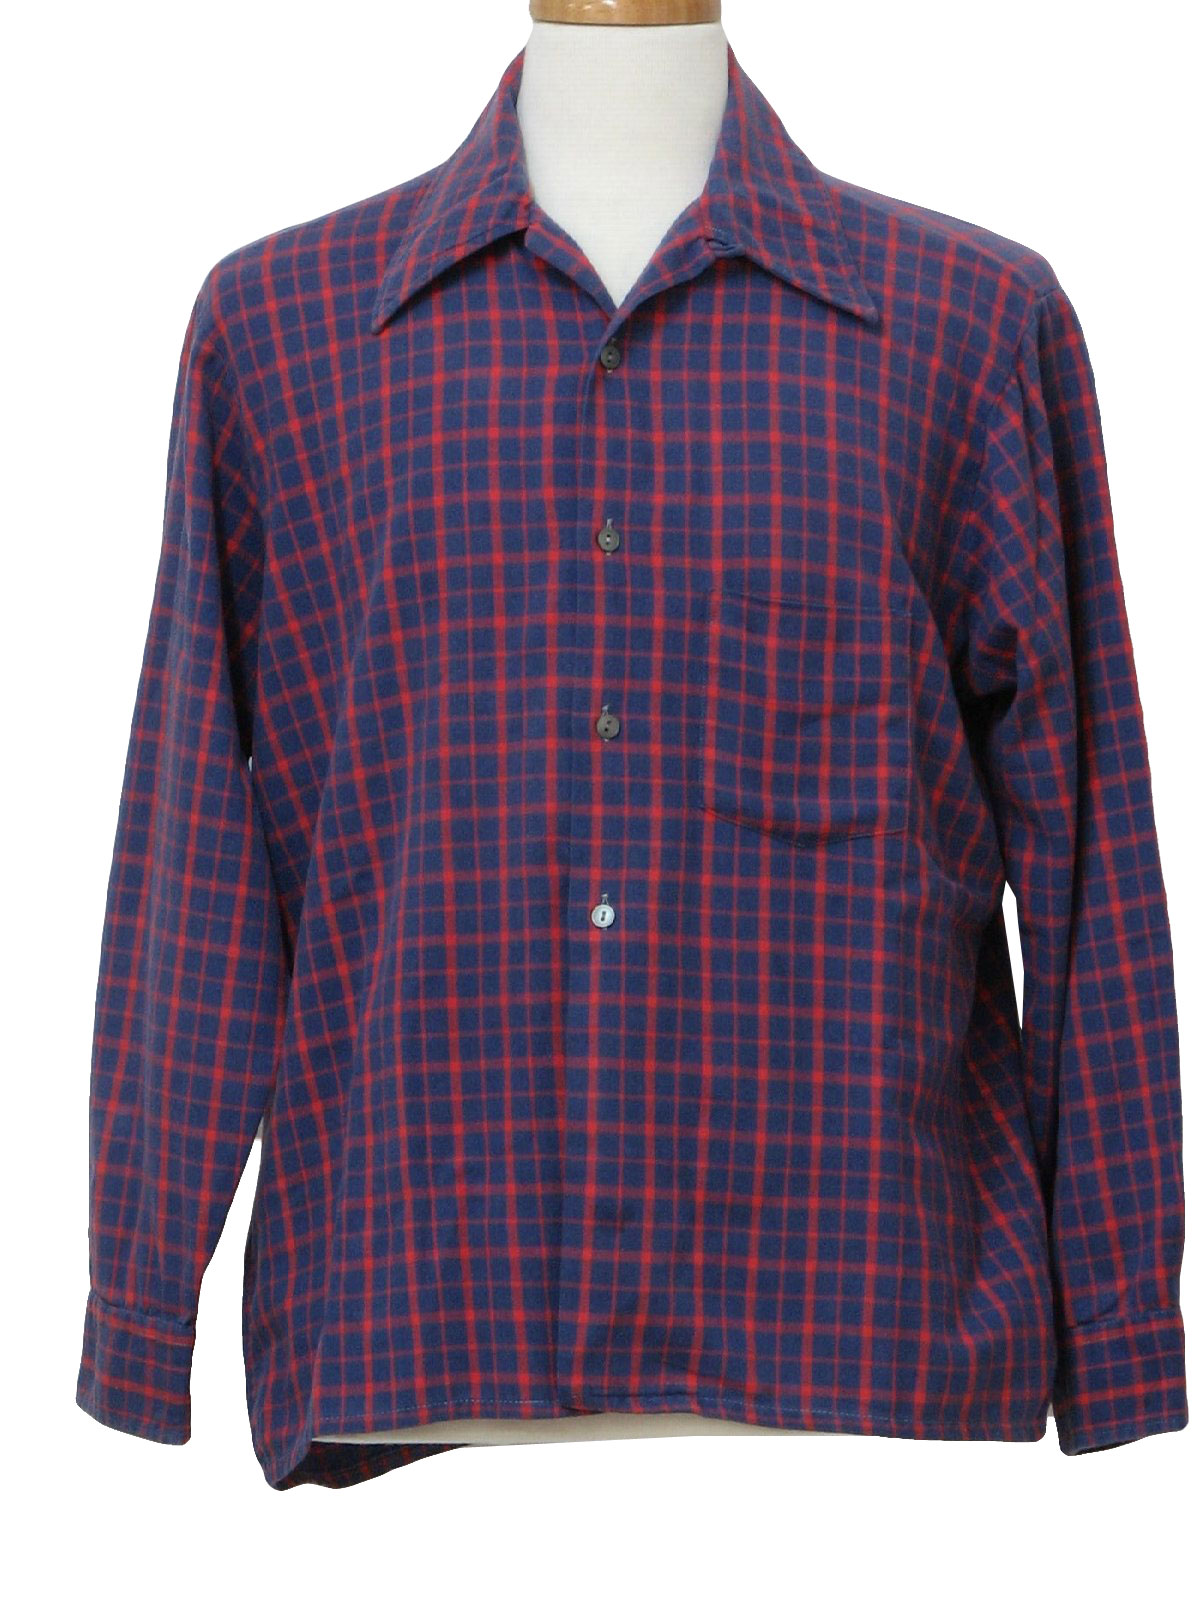 Vintage 1960 39 s shirt late 60s towncraft jc penney mens for Cotton polyester flannel shirts